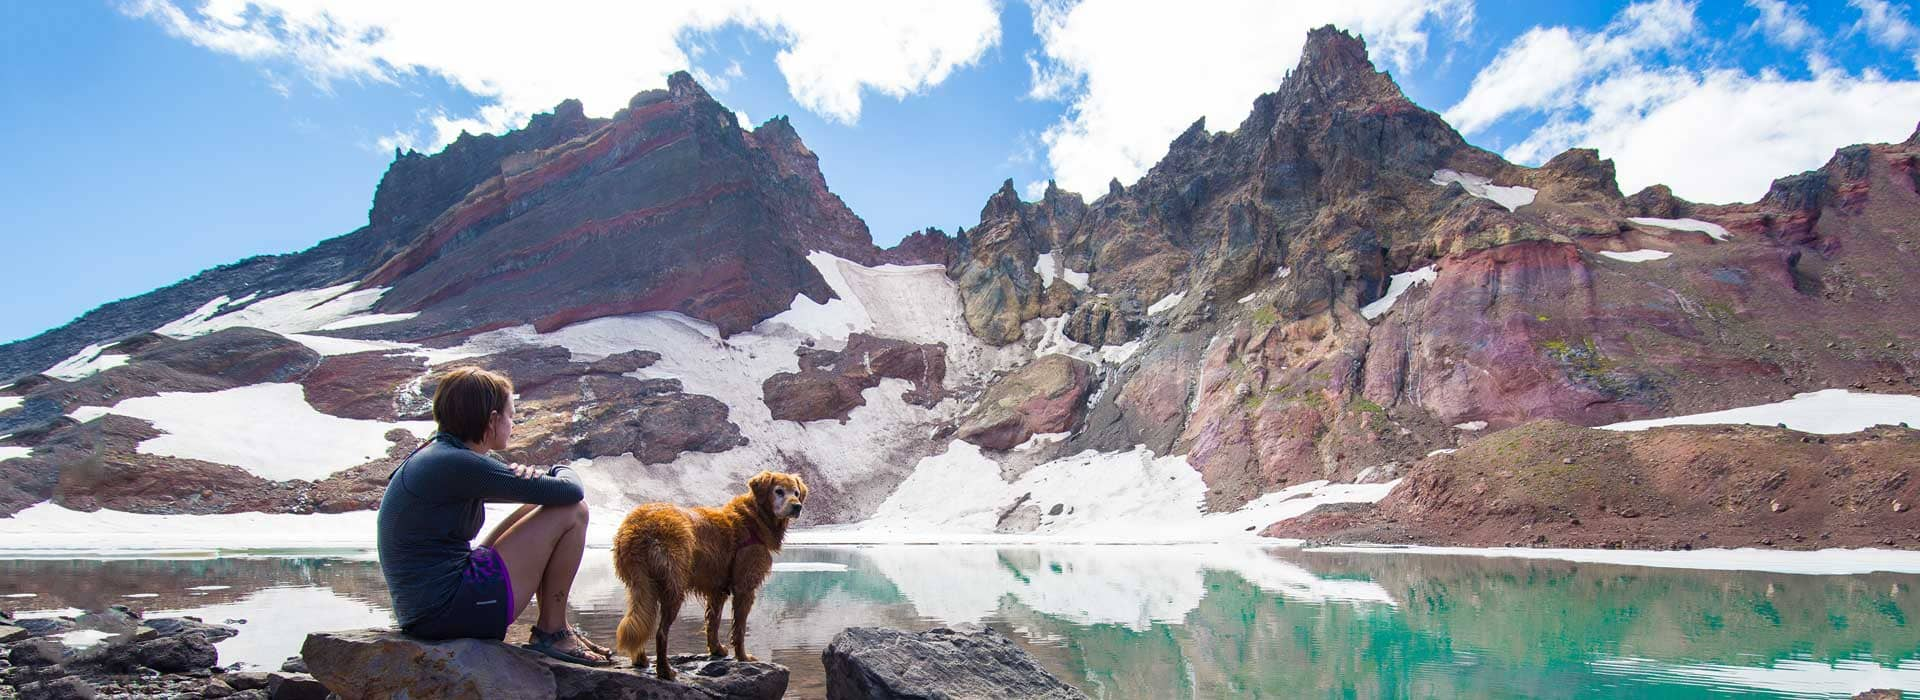 Person hiking with pet near Bend Oregon